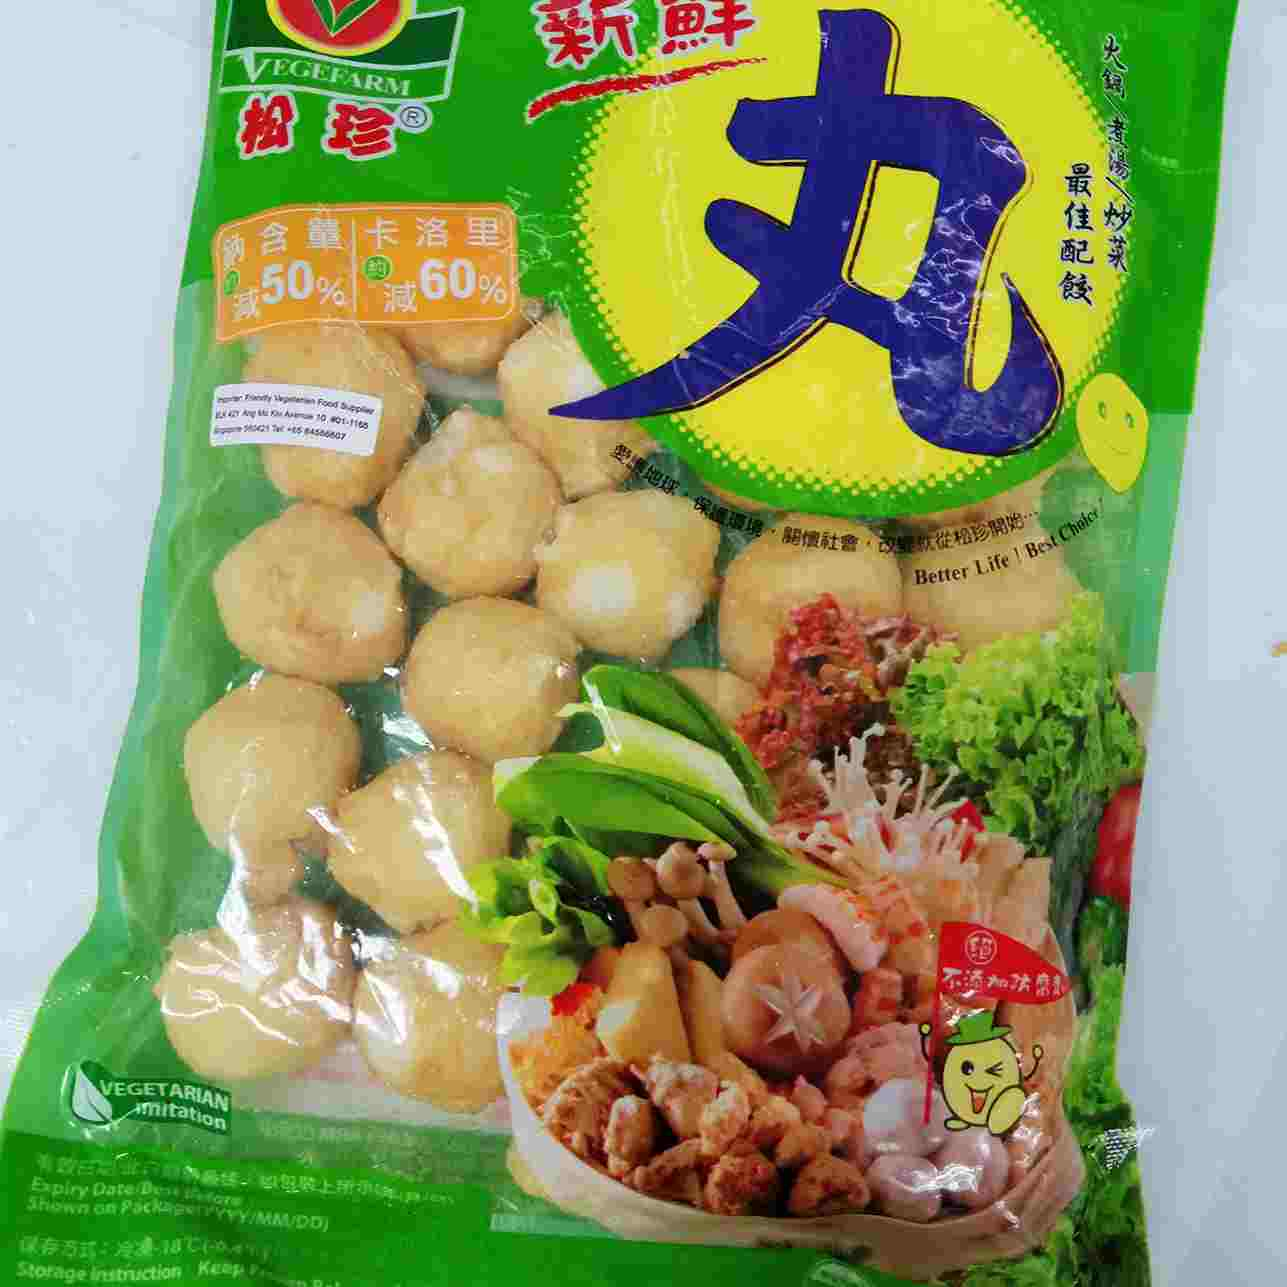 Image Vegefarm Vege Fried Squid Ball 松珍-花枝杨 花枝揚 454grams